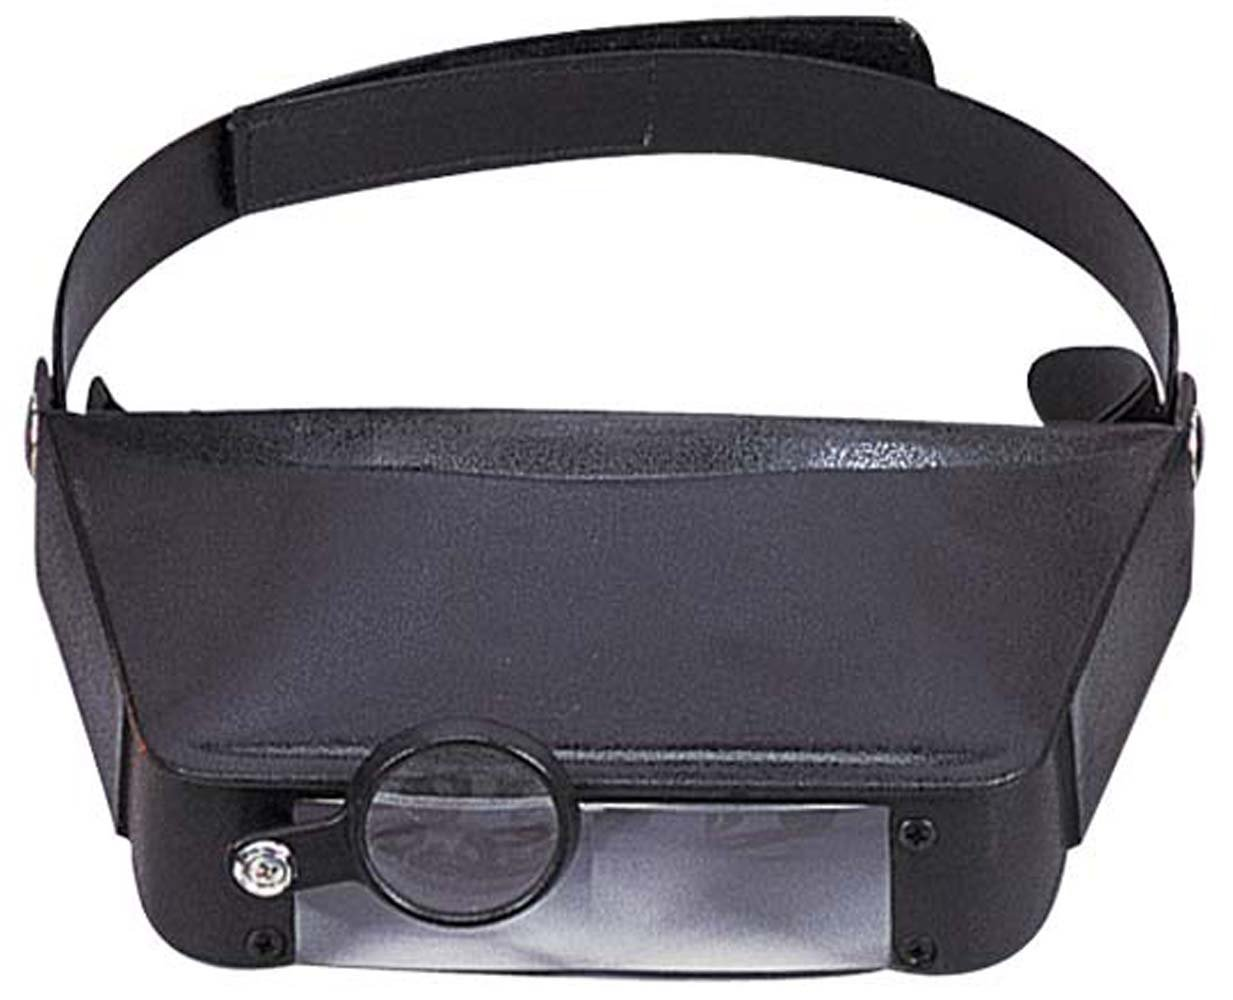 ToolUSA Black Head Worn Magnifier With Adjustable Strap and 3 Levels Of Power: 1.8x, 2.3x, And 4.1x: MG-91216